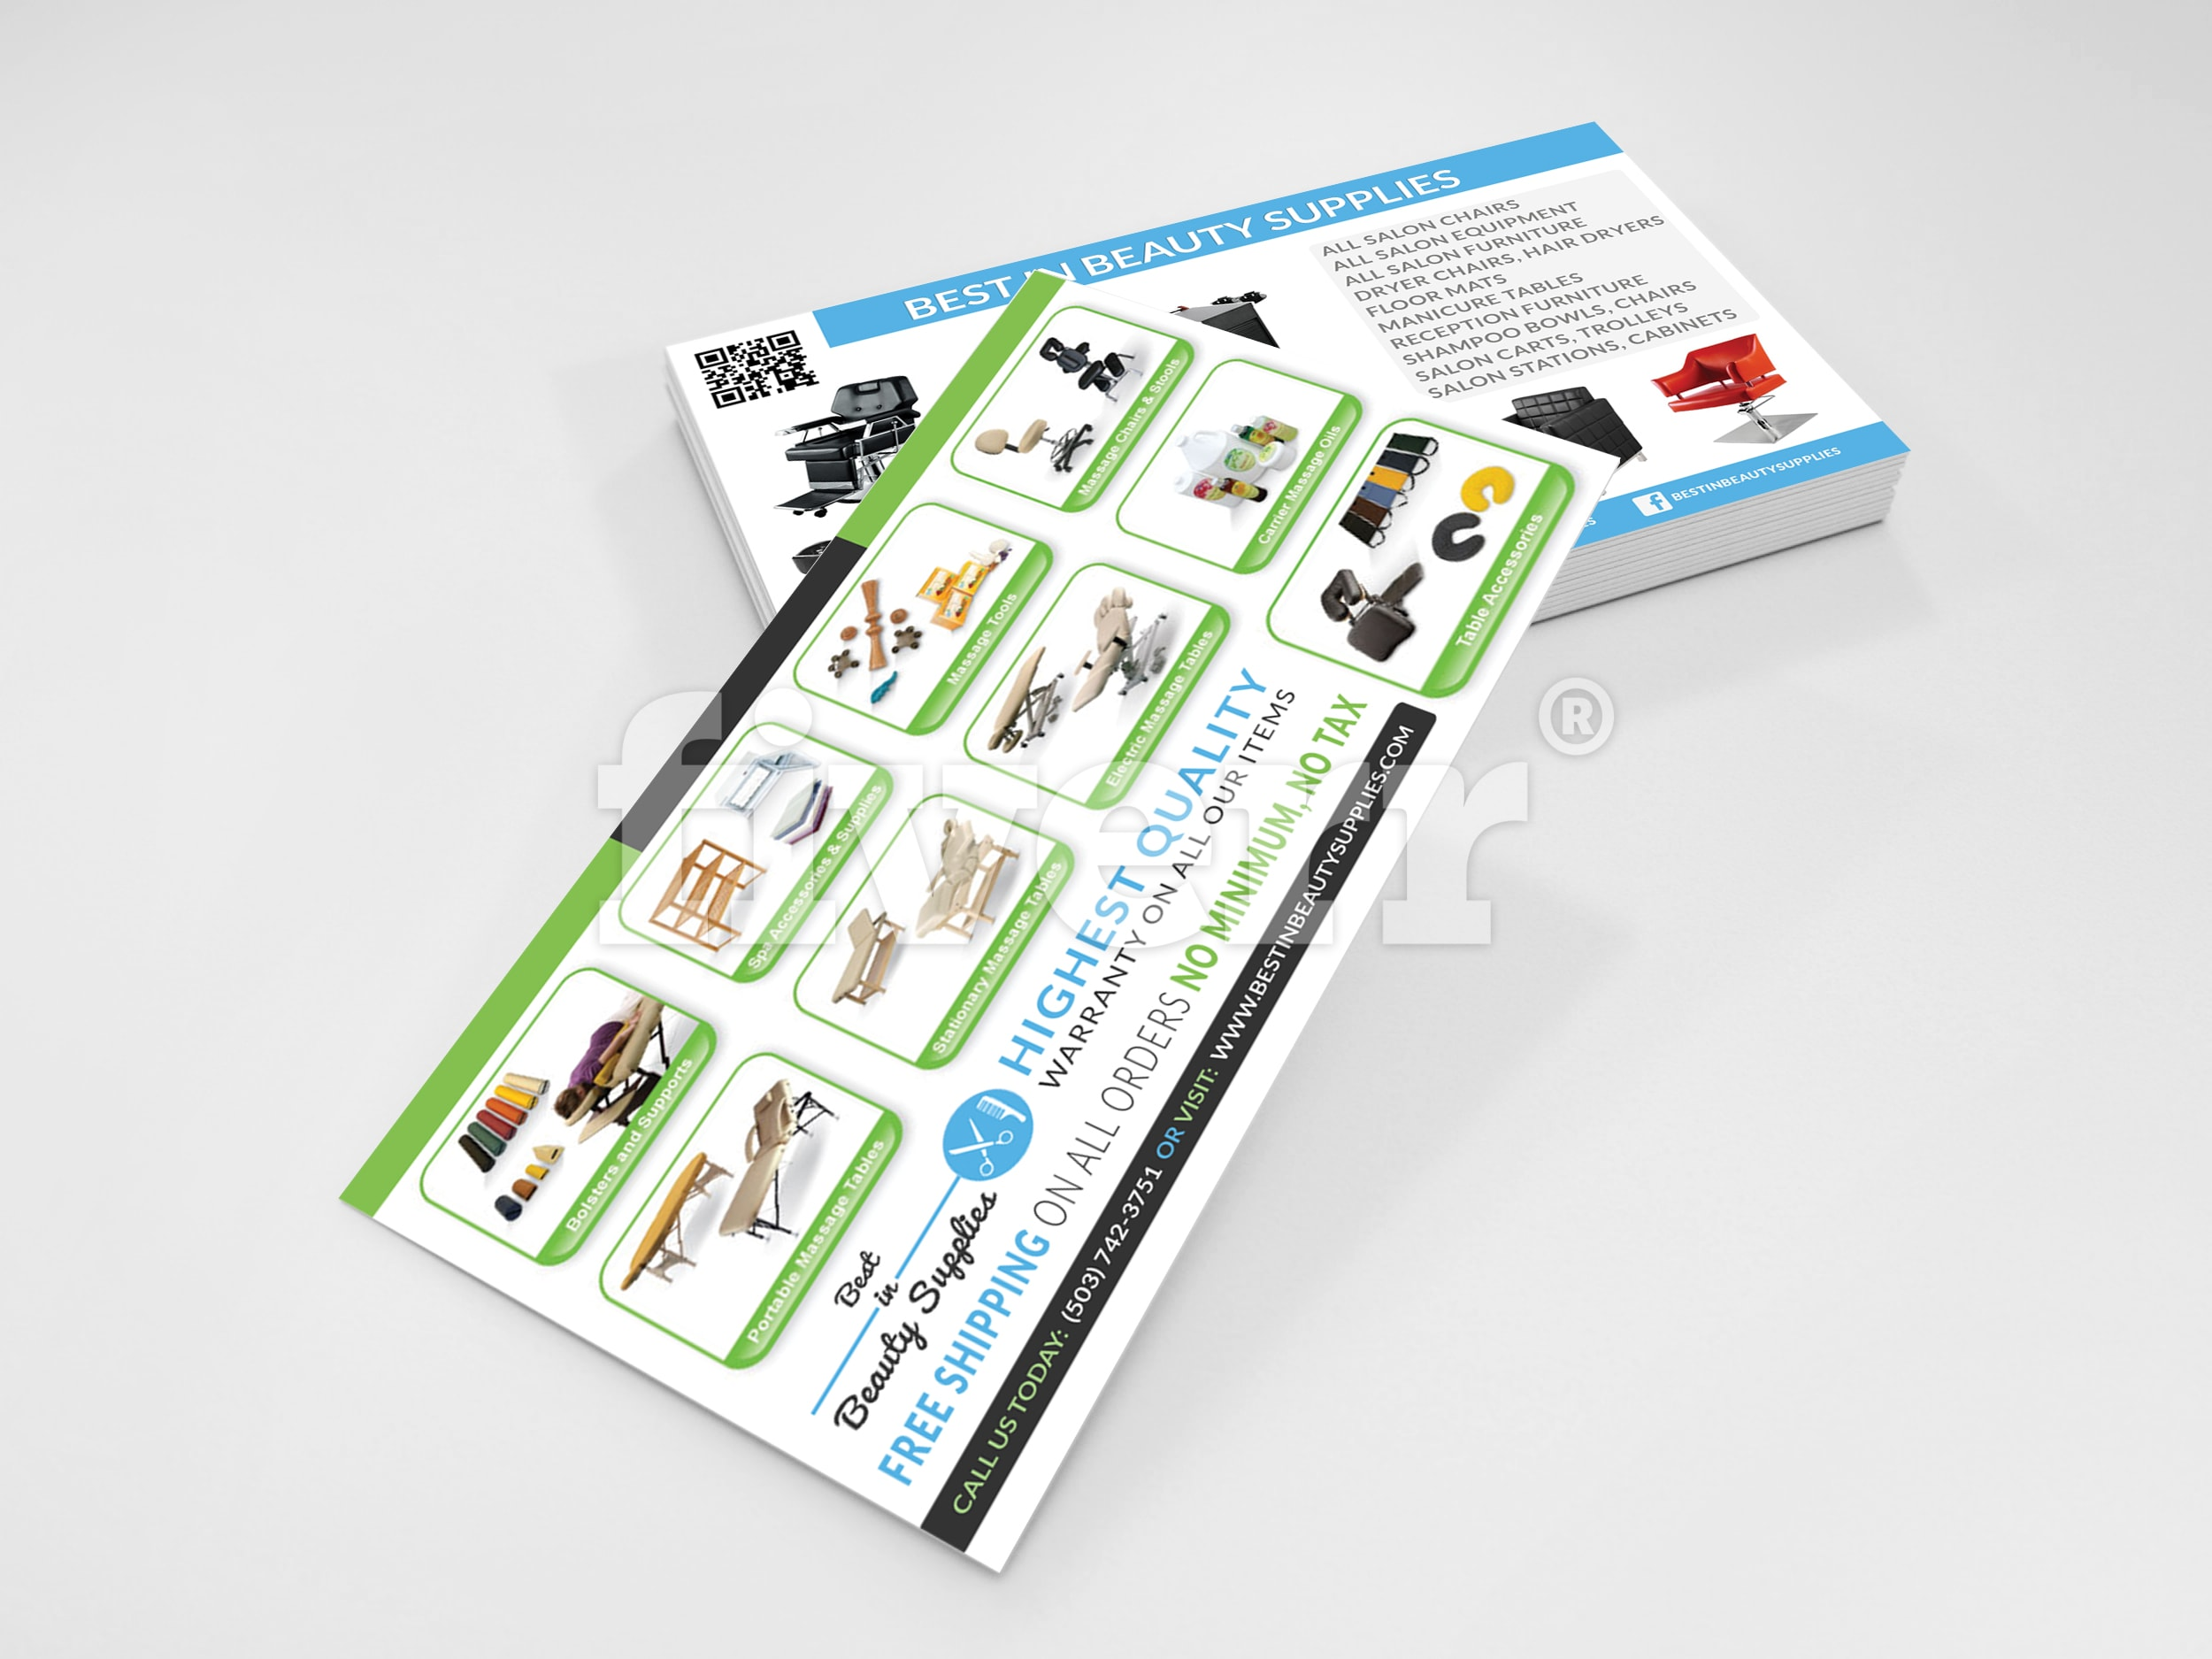 Design outstanding business card and do 9 realistic mockups design outstanding business card and do 9 realistic mockups vistaprint by sofast reheart Gallery